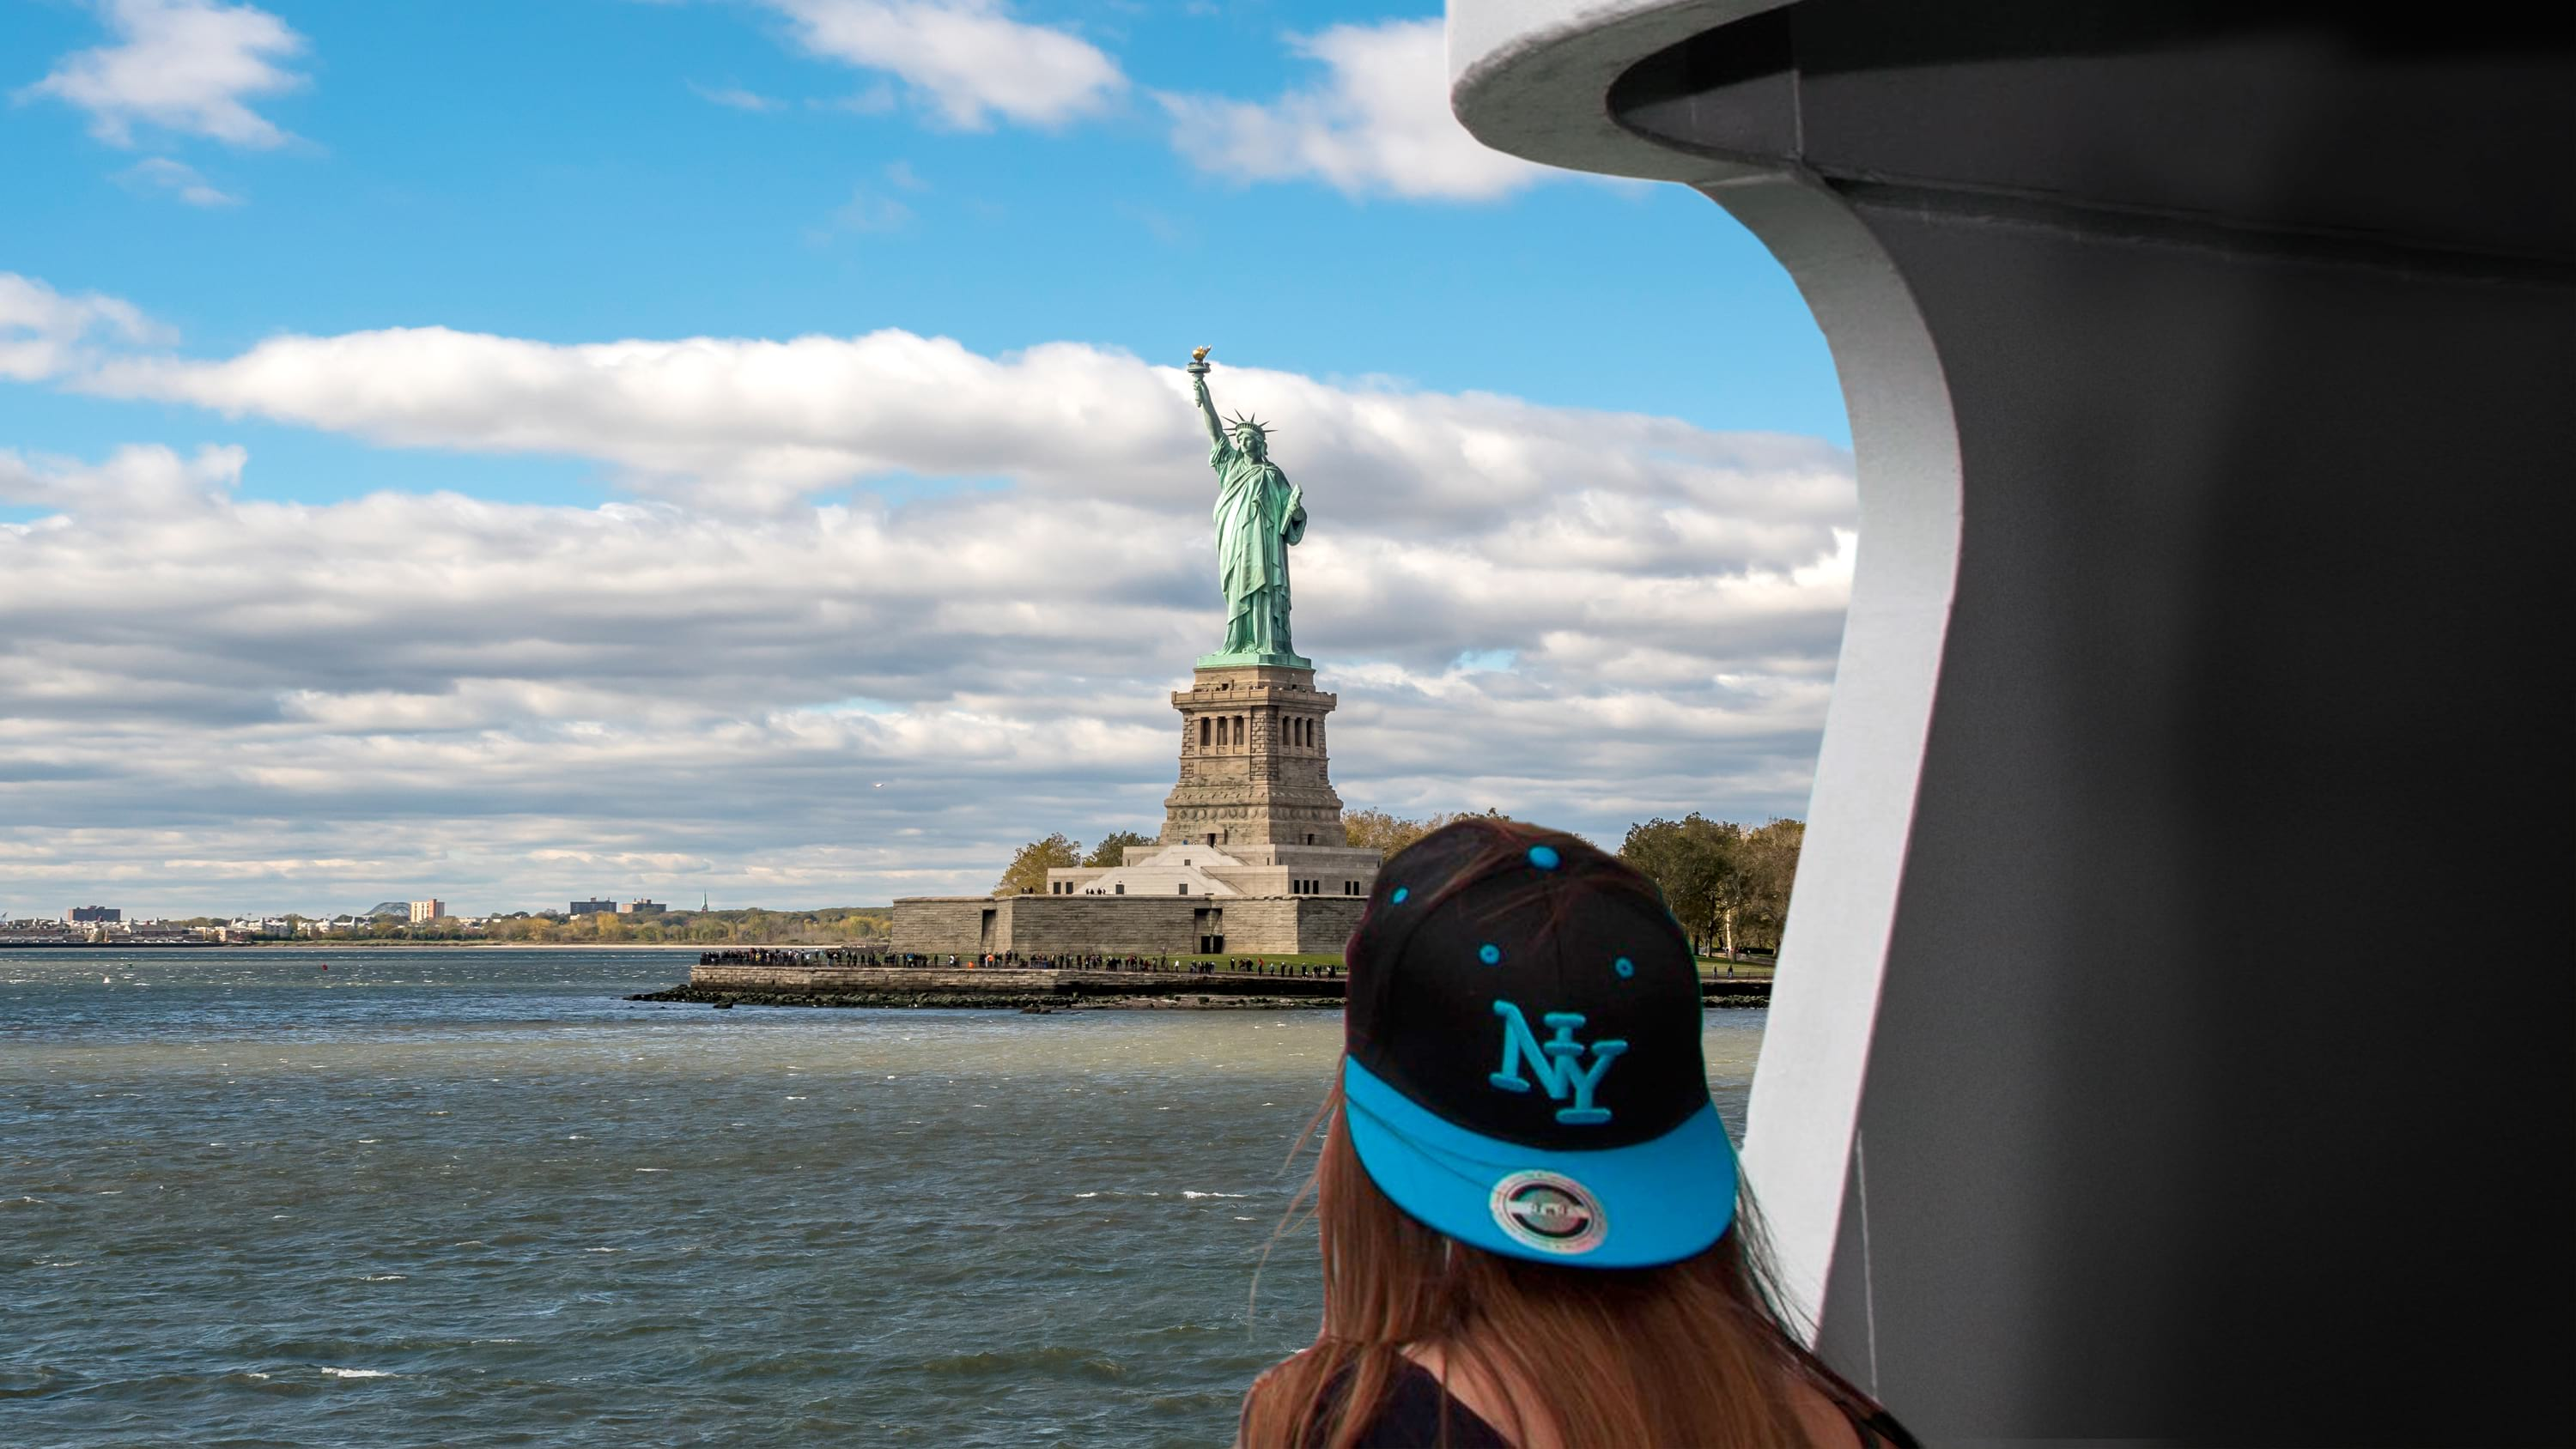 Washington, D.C. and New York City - WorldStrides Educational Travel